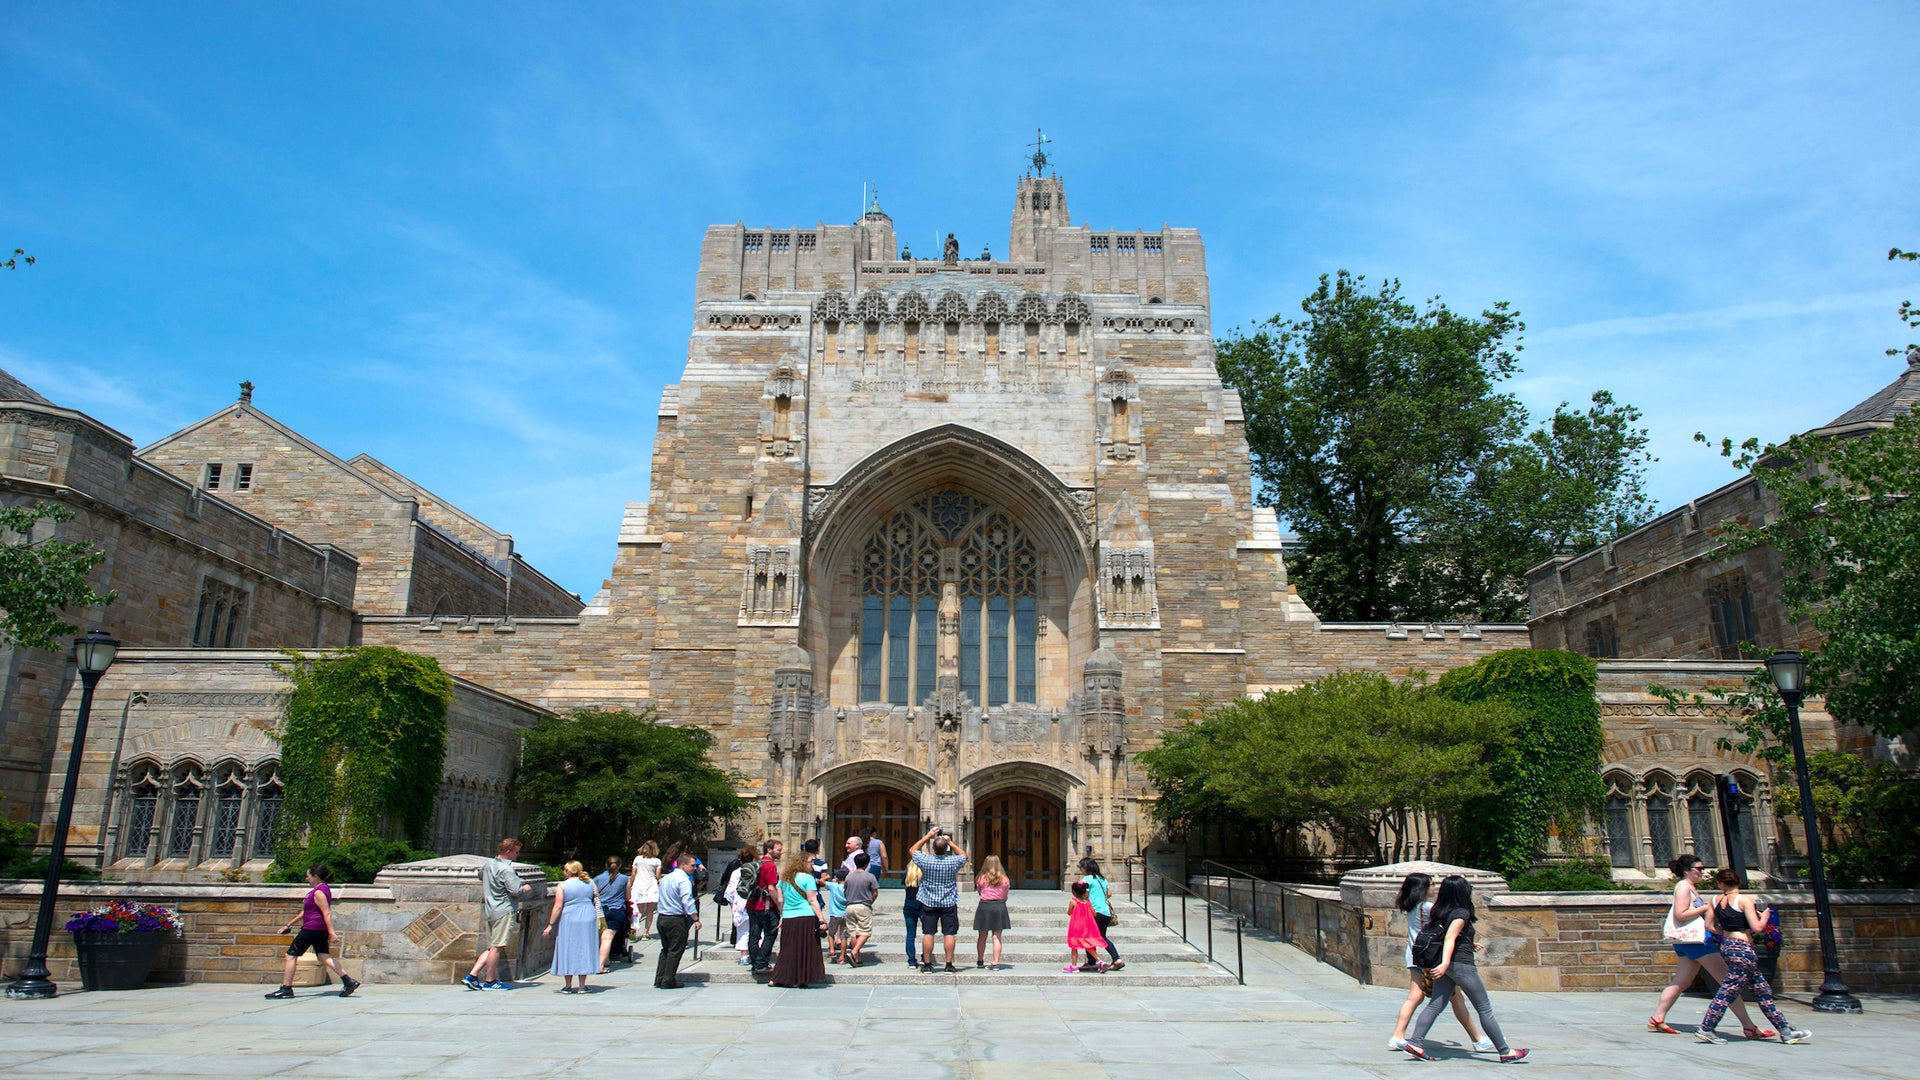 Napping While Black? White Yale Student Called Cops On Black Student Sleeping In Common Room